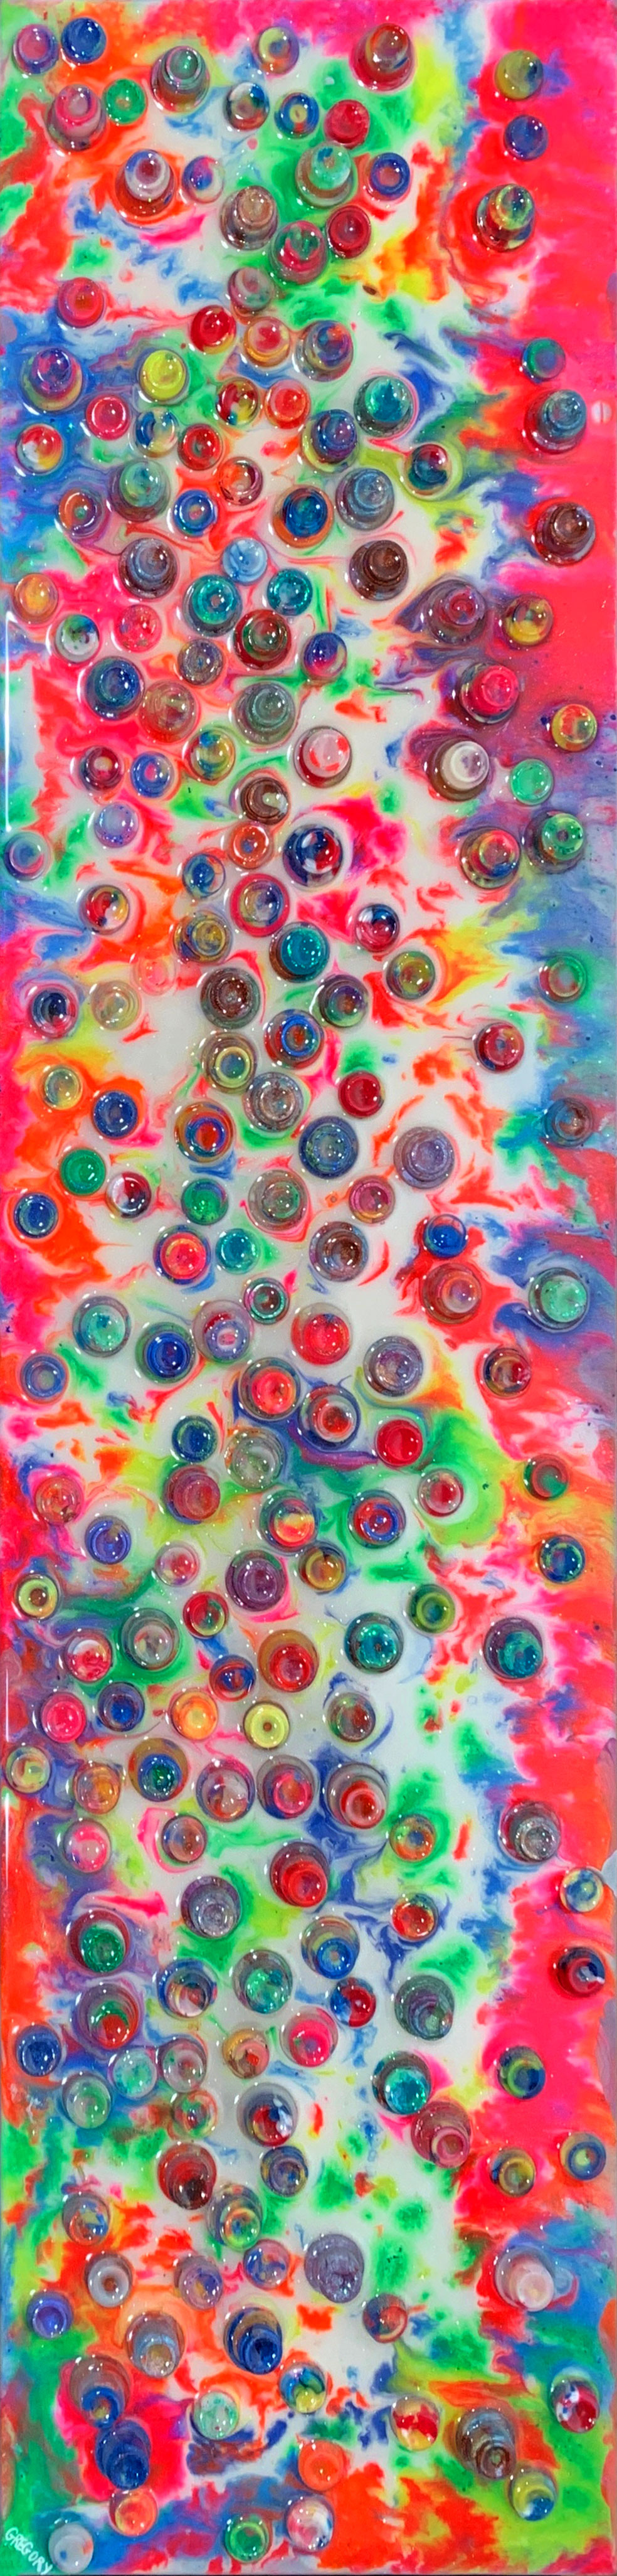 colorful abstract painting by allison gregory | Felder Gallery